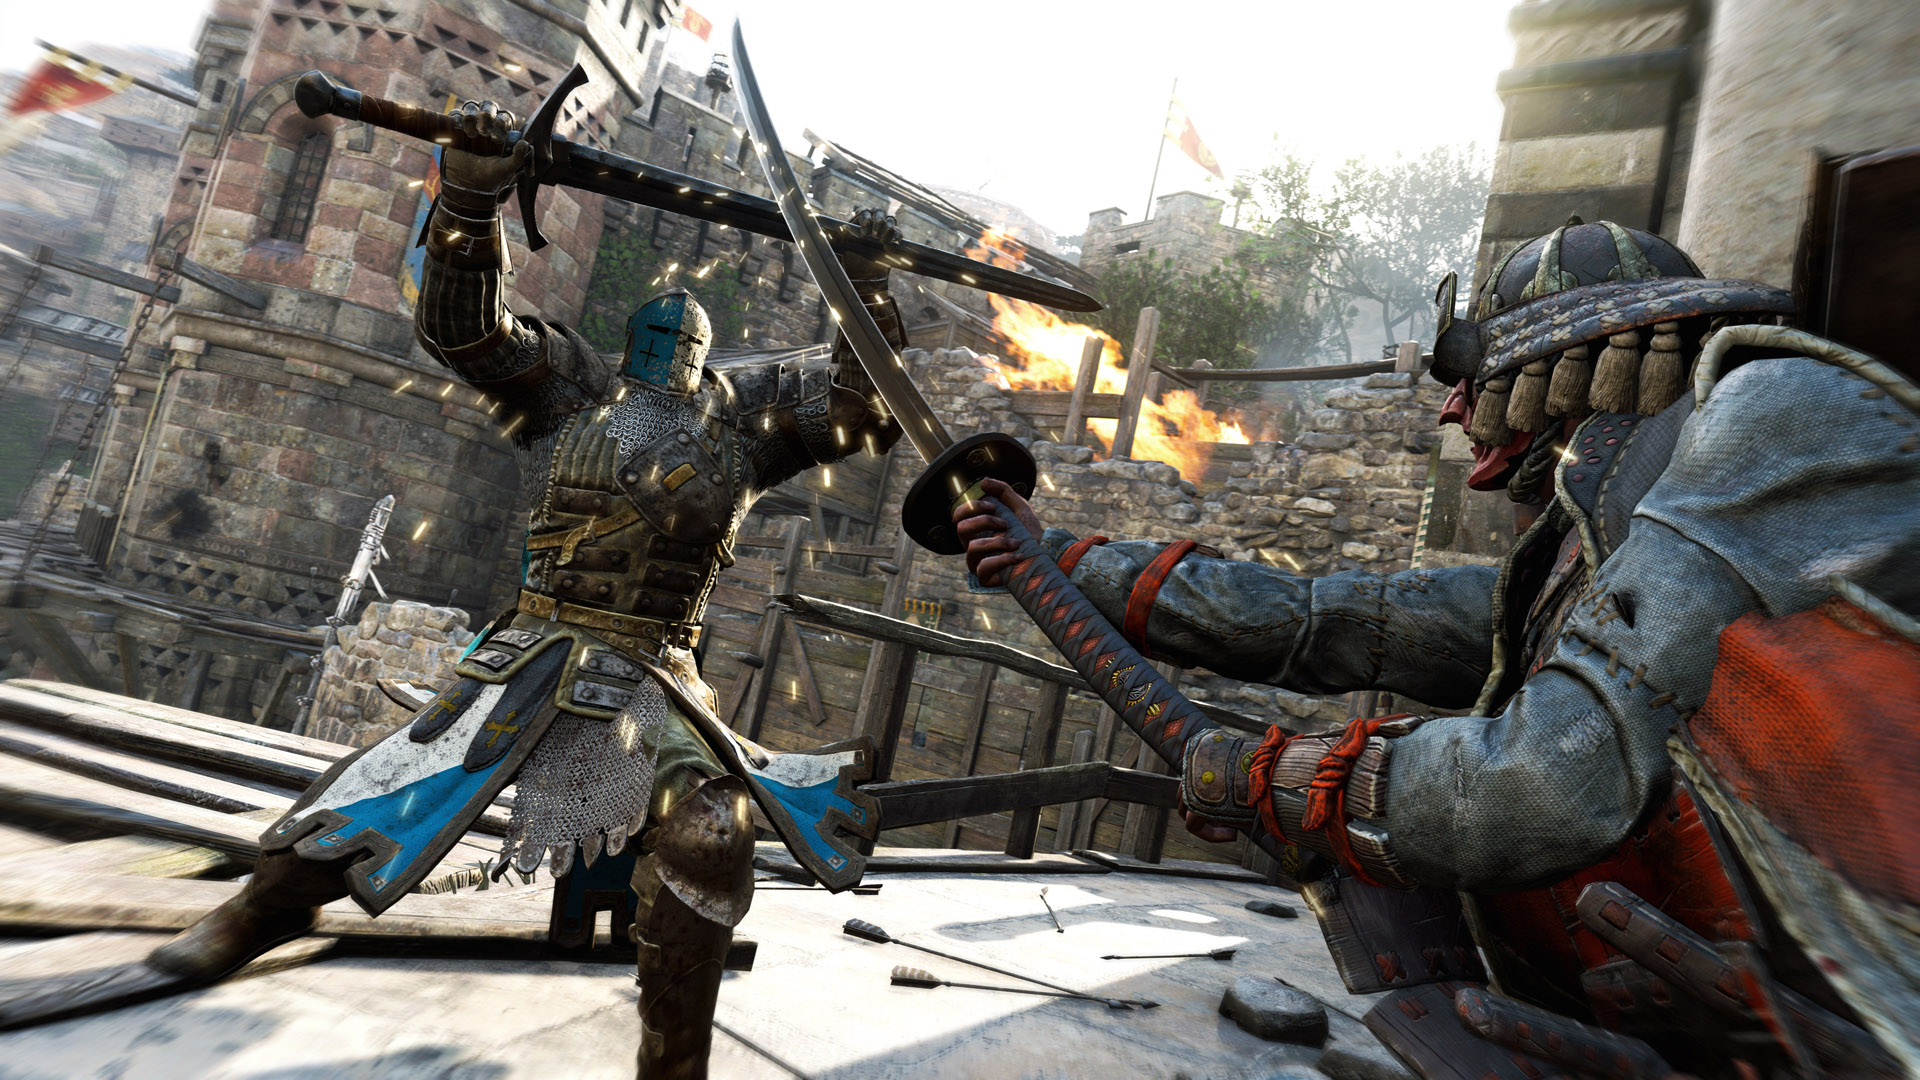 Blocking is extremely useful in For Honor, but too often people spam Guard Break. Be sure to keep an eye out so you can quickly counter their Guard Break and sneak in more attacks!